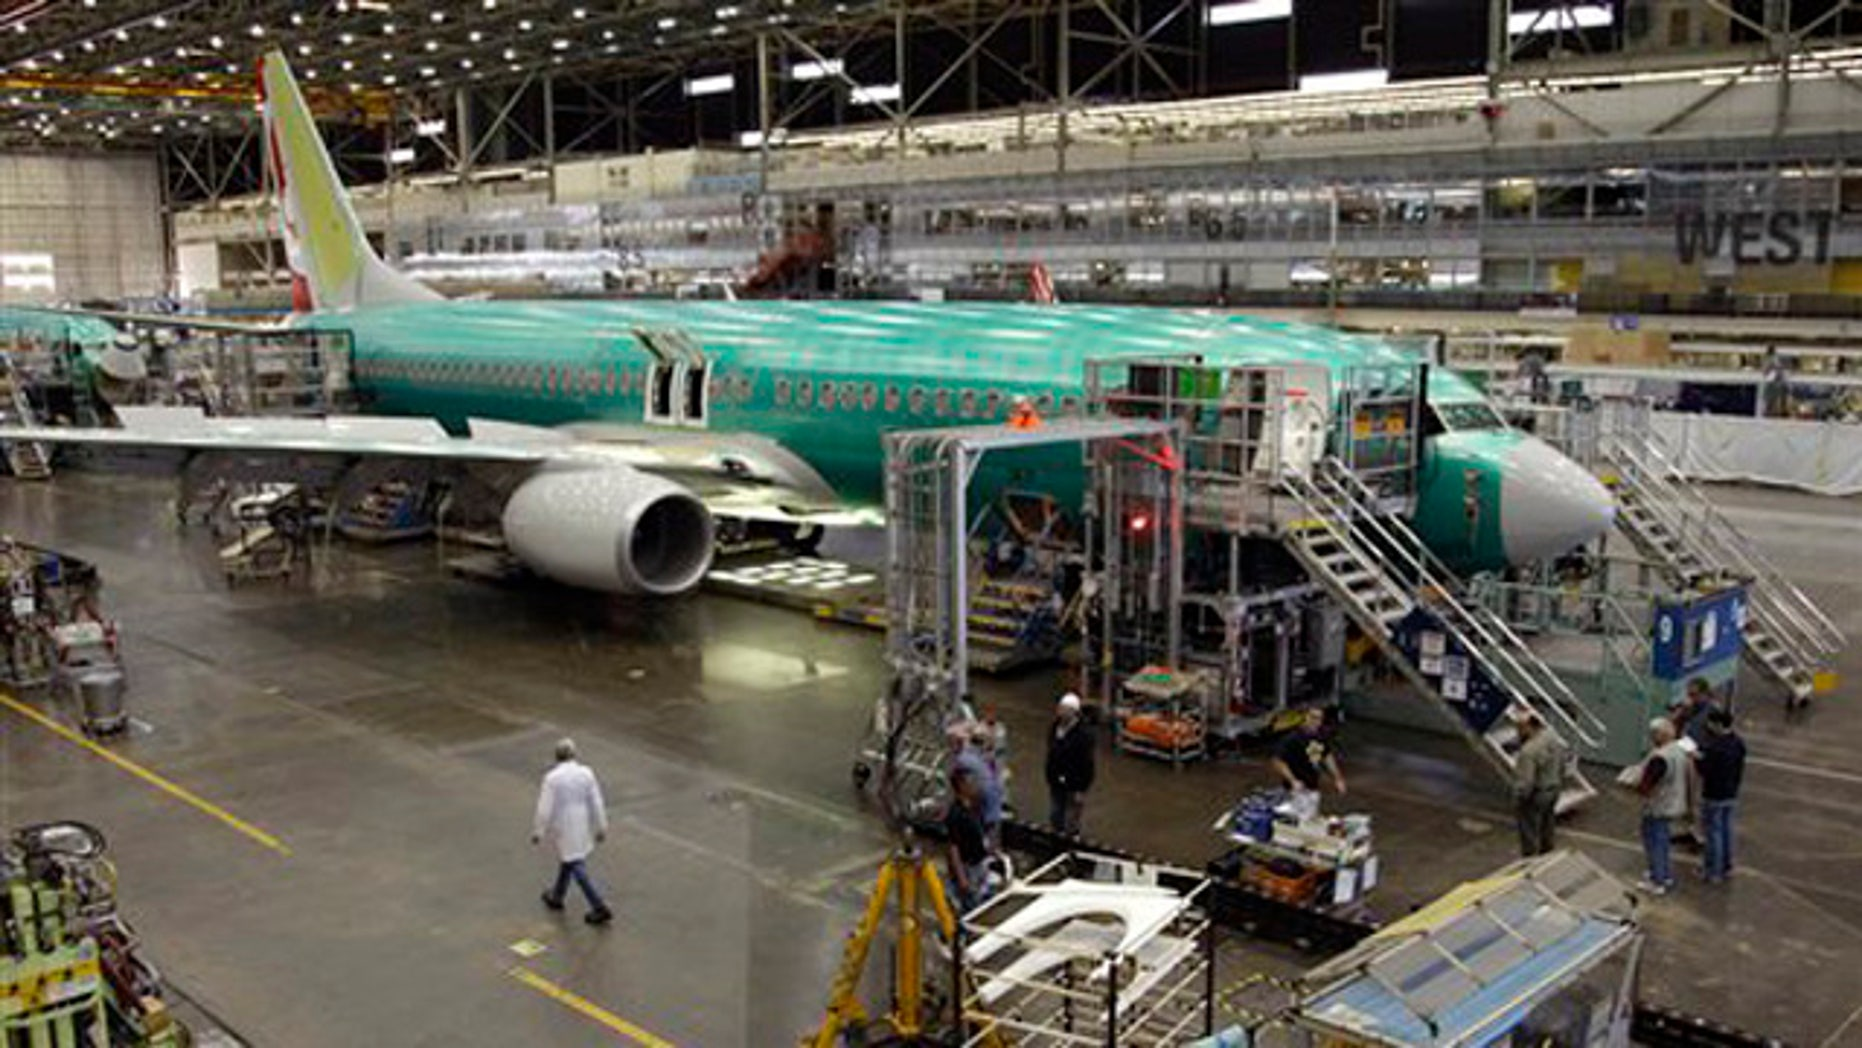 May 17, 2011: Shown here is a Boeing 737 at the Boeing Co. assembly facility in Renton, Wash.